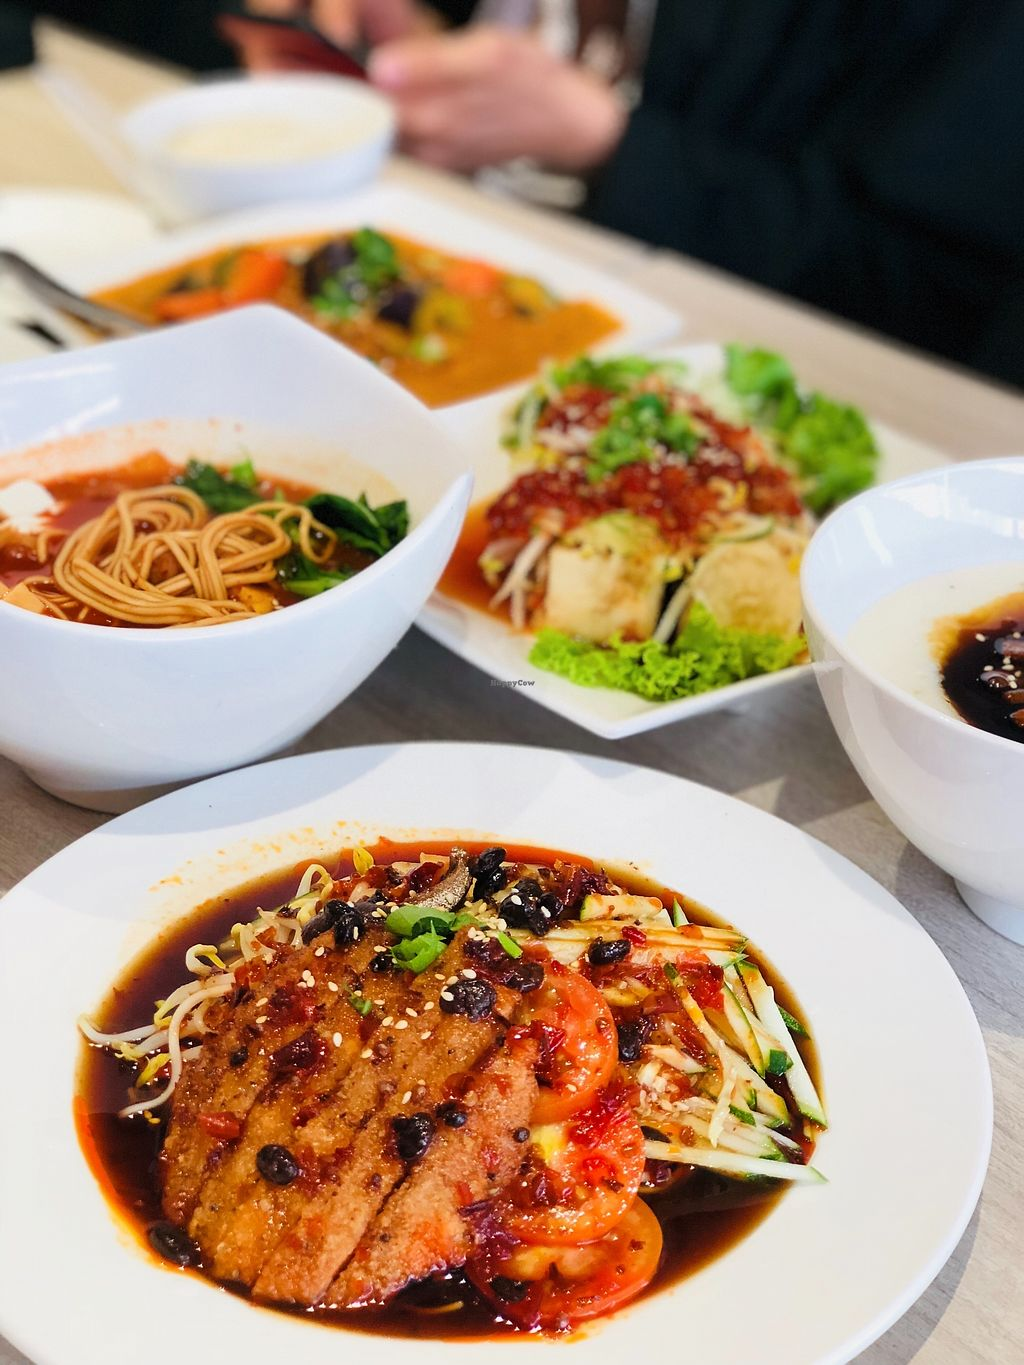 """Photo of O'bean Organic Soya Vegetarian Restaurant  by <a href=""""/members/profile/CherylQuincy"""">CherylQuincy</a> <br/>Pan fried chicken cold ramen, kimchi soup ramen, Indian Assam curry tempeh, Thai Style Tofu <br/> February 25, 2018  - <a href='/contact/abuse/image/110791/363692'>Report</a>"""